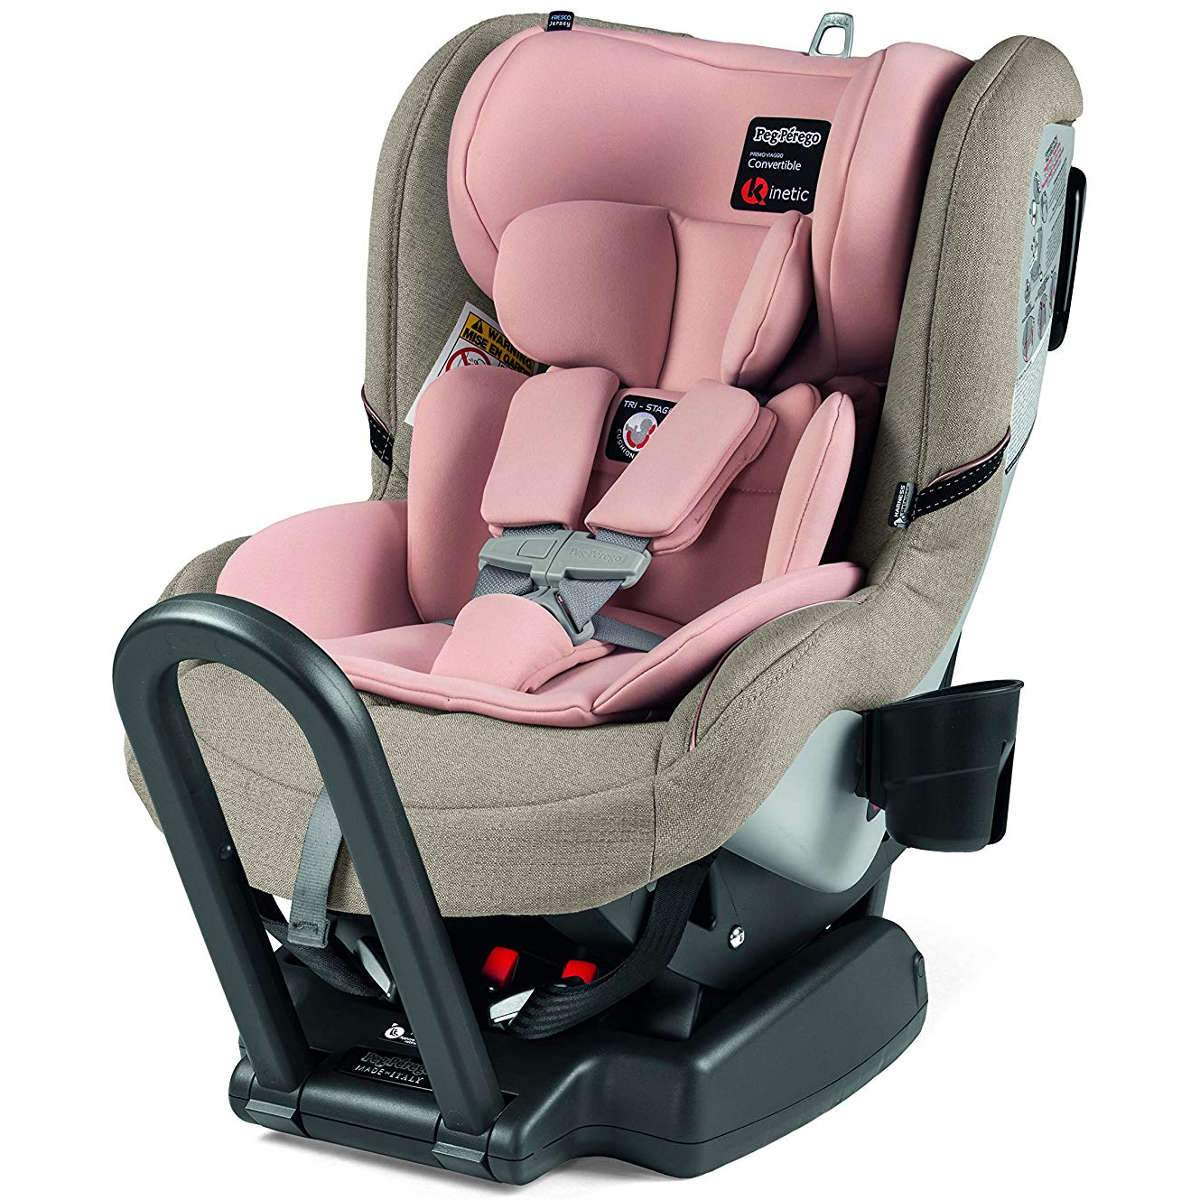 Maxi Cosi Car Seat Vs Peg Perego Peg Perego Primo Viaggio Convertible Kinetic Car Seat